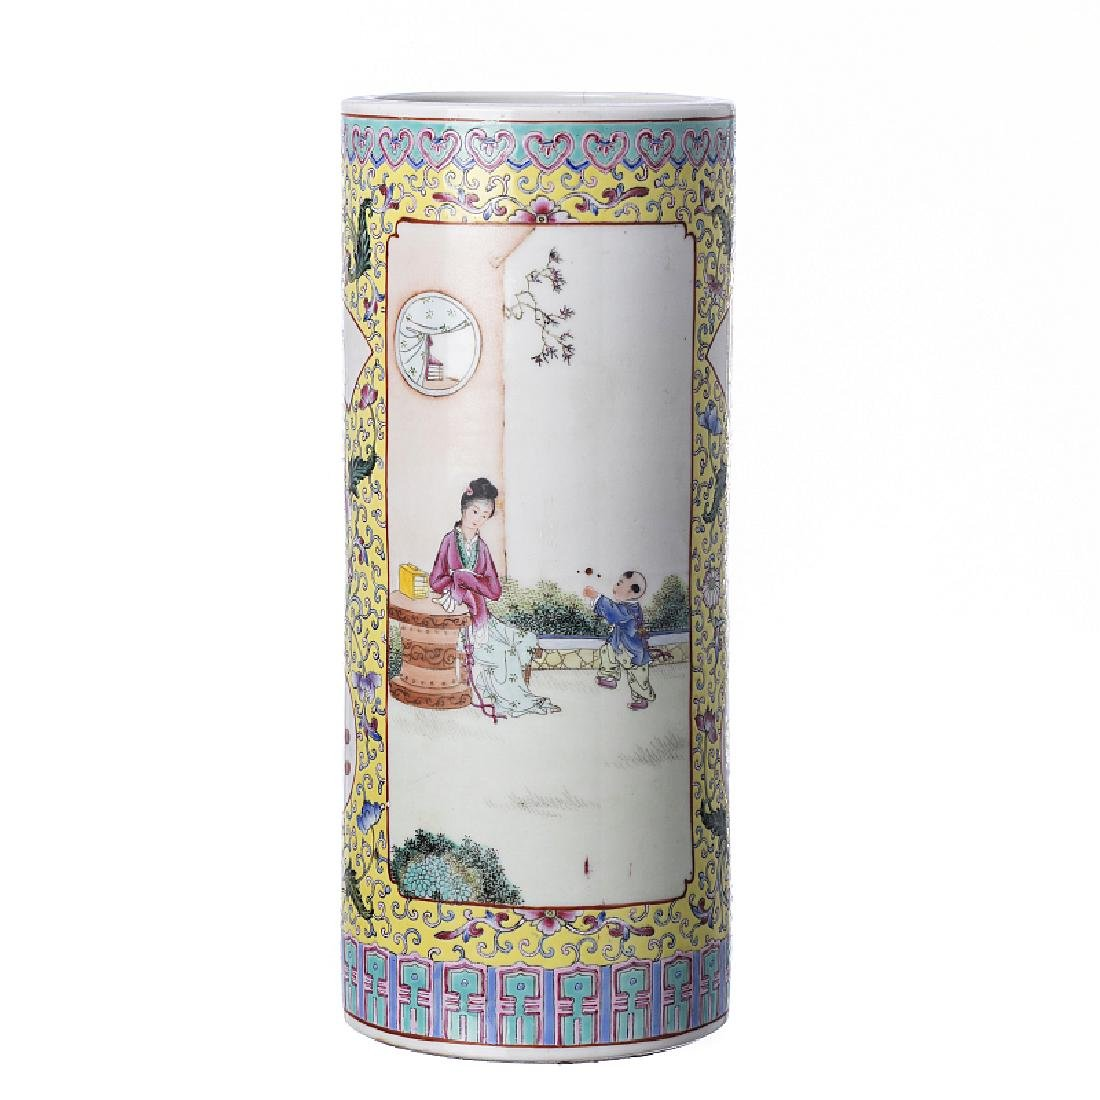 Cylindrical vase in Chinese porcelain